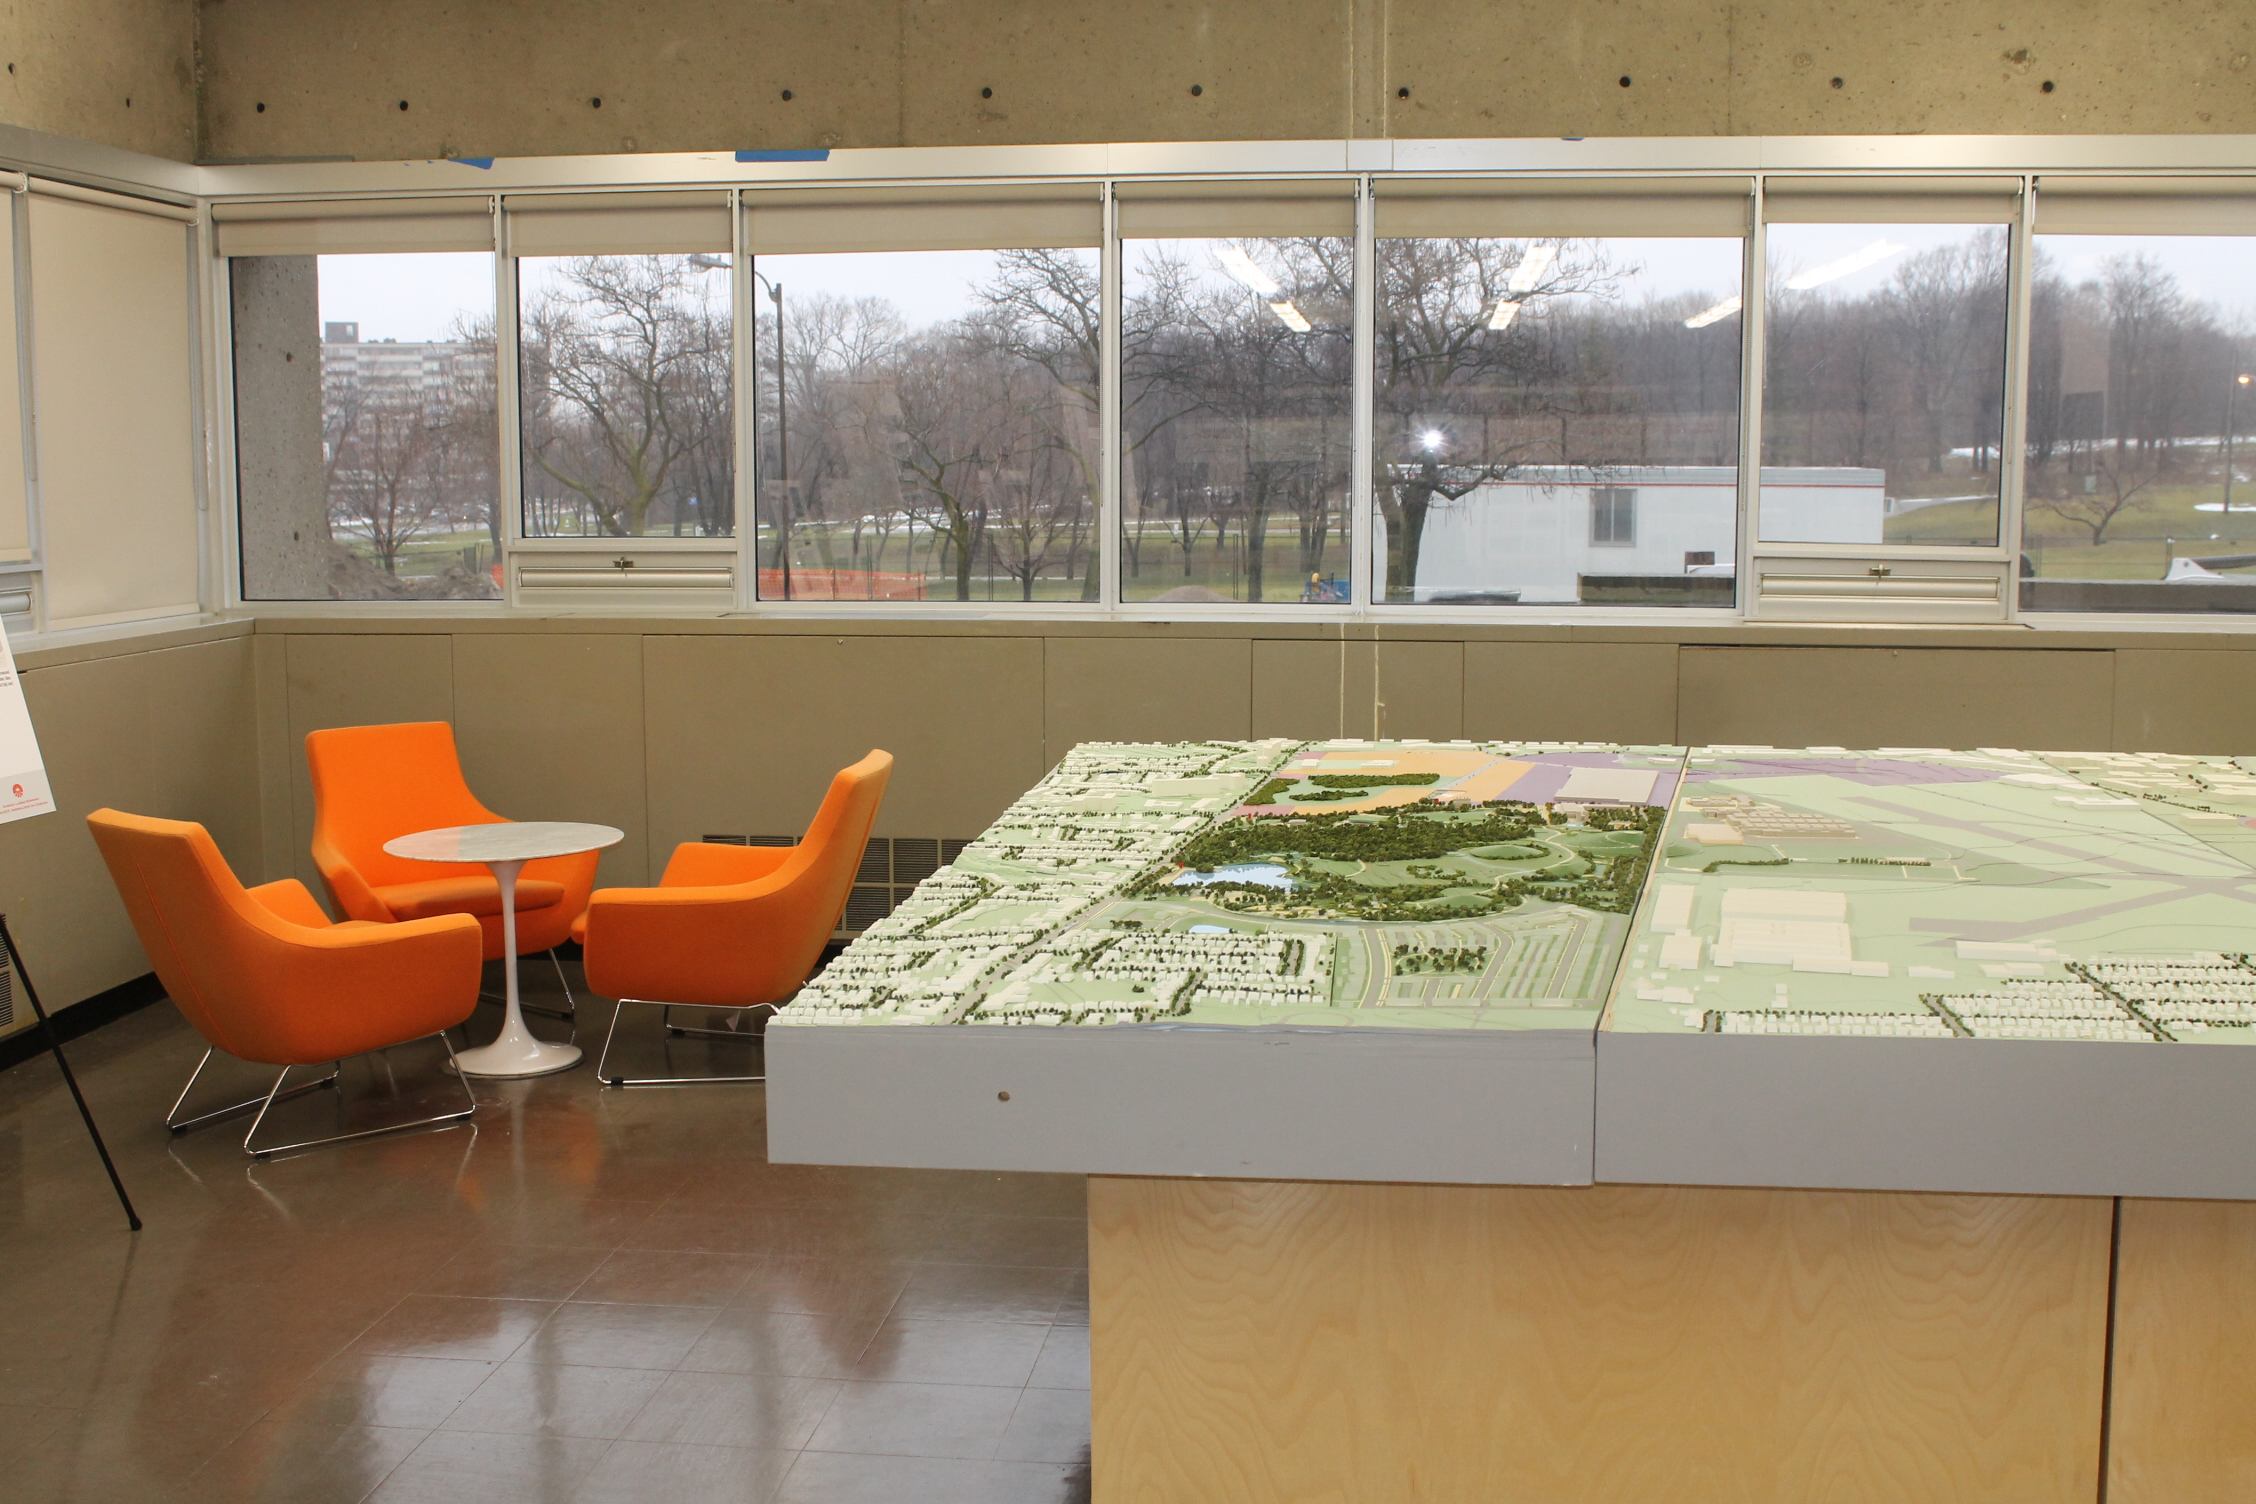 Picture of interior of the Downsview Hub. Small table with orange chairs displayed